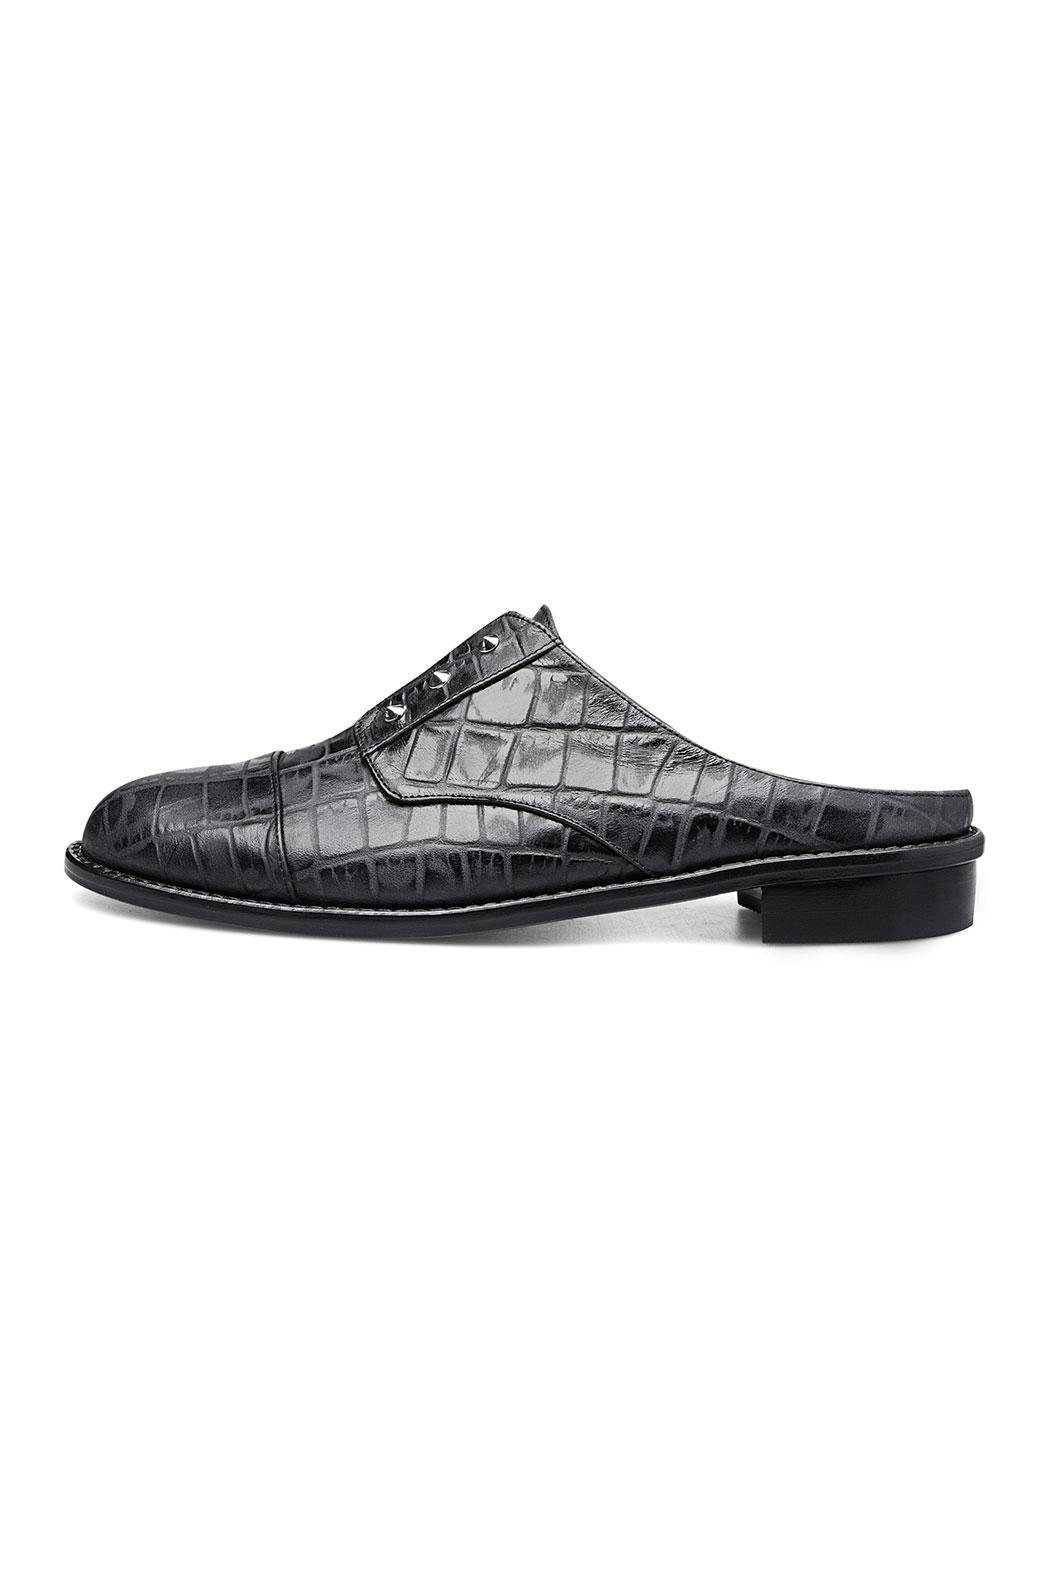 Minhk Naomi Croc Black Shoes - Front Full Image